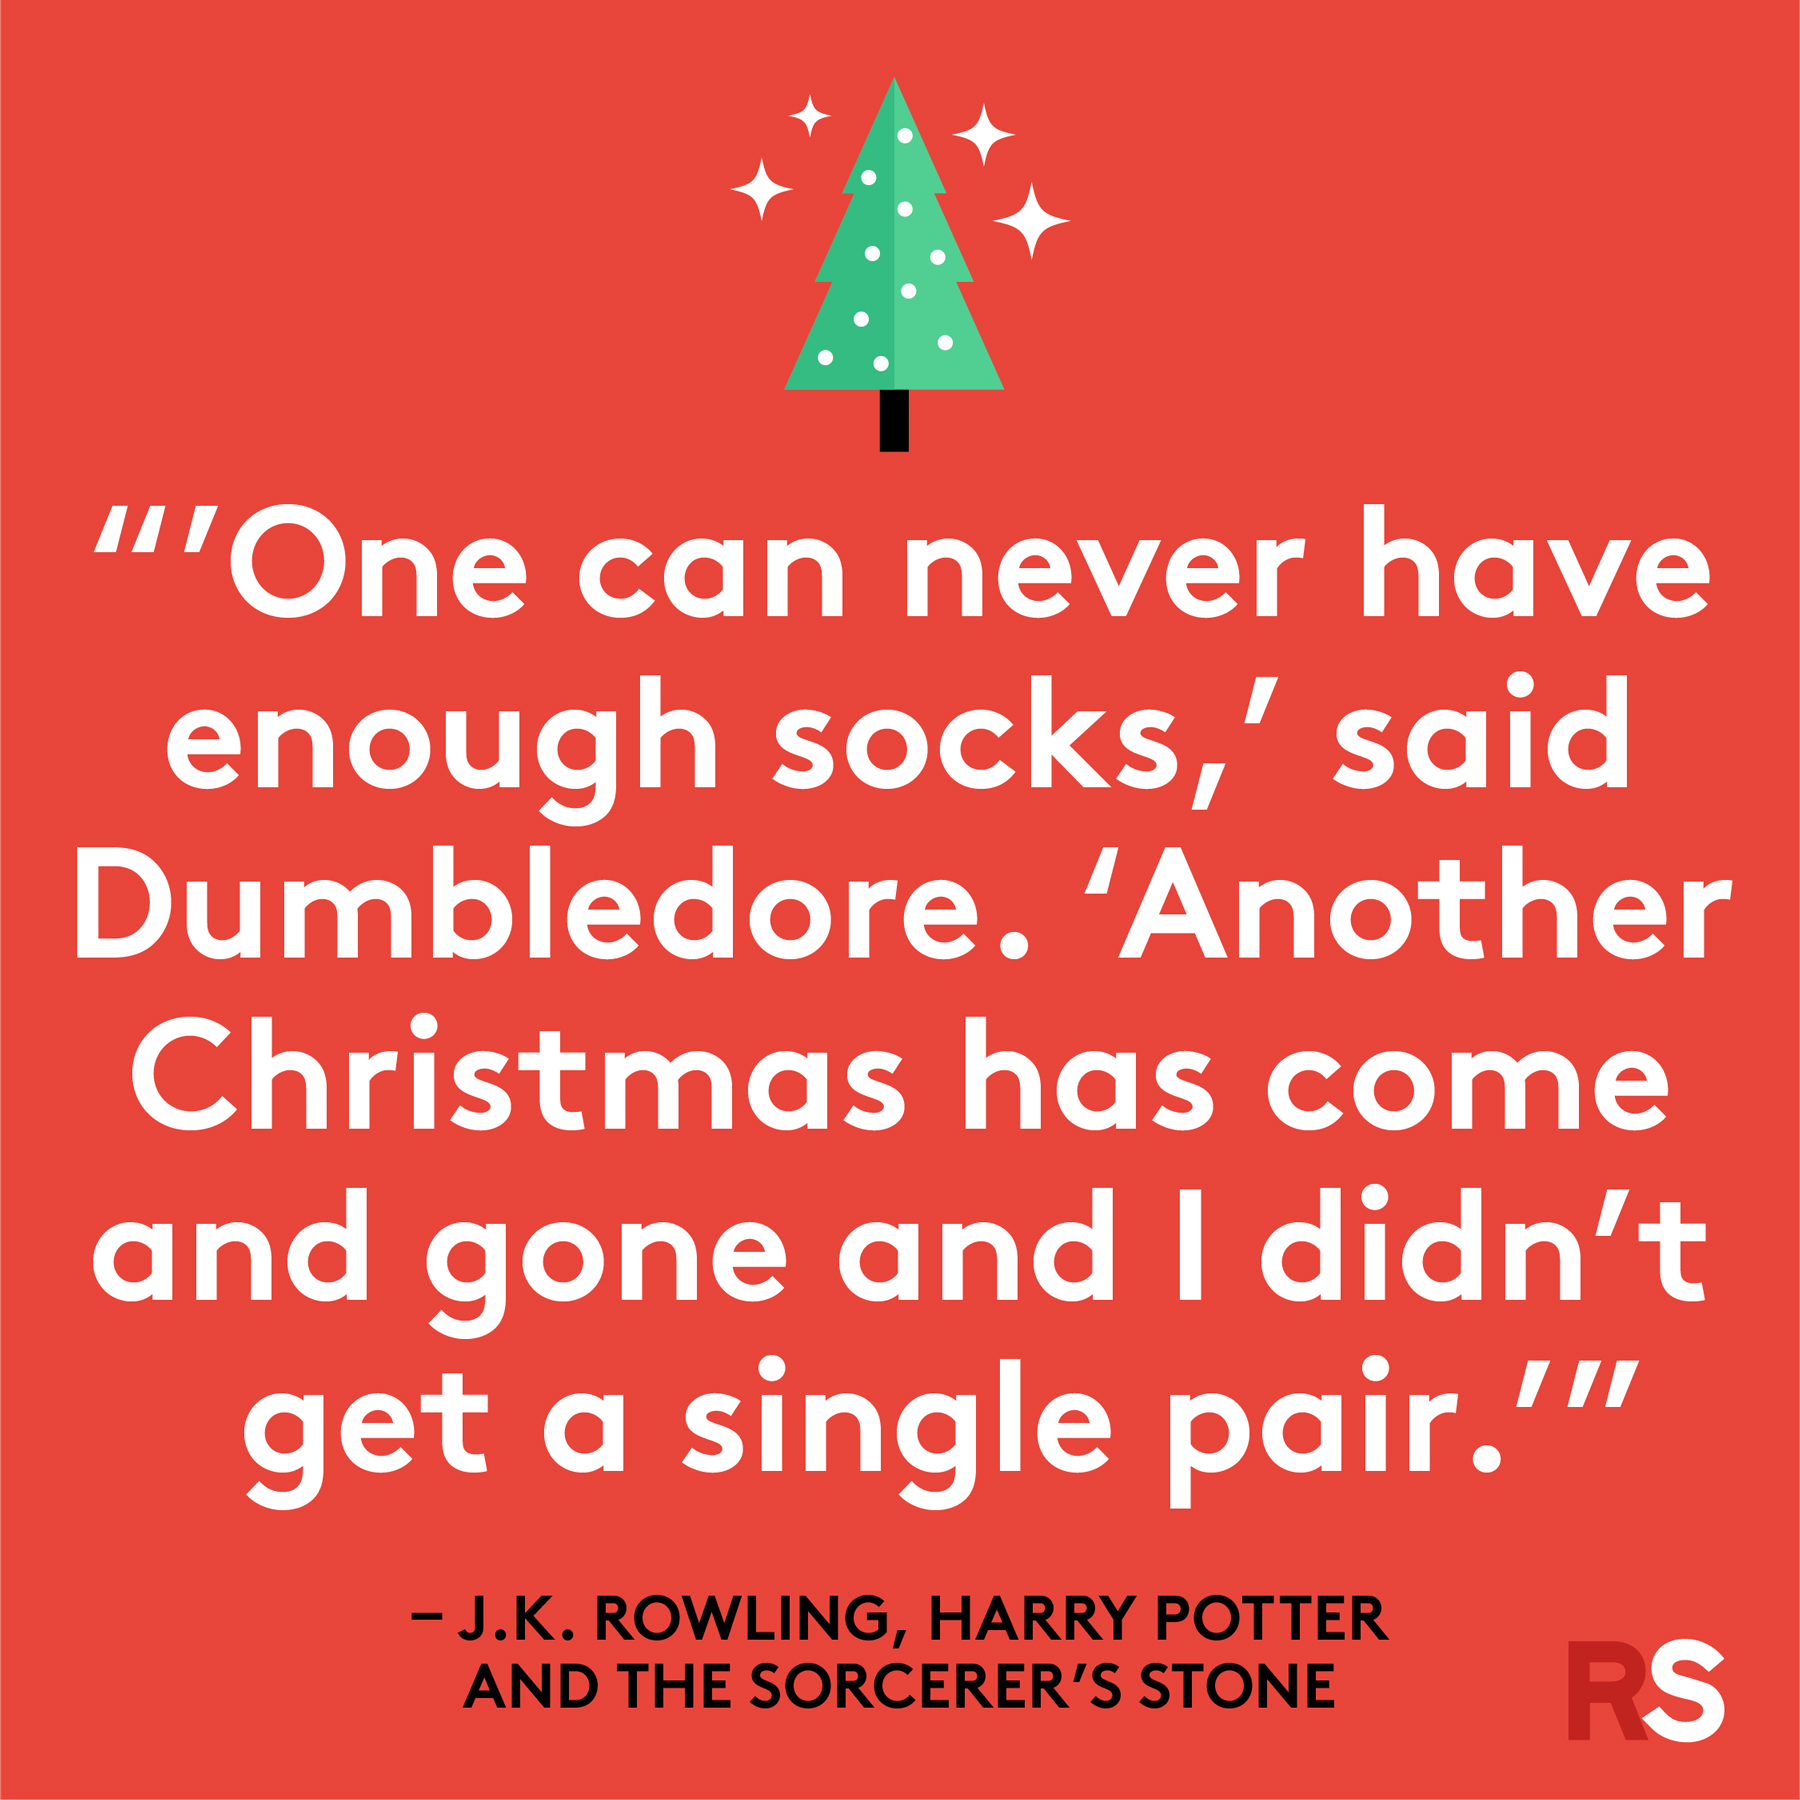 Best Christmas quotes - J.K. Rowling, Harry Potter and the Sorcerer's Stone